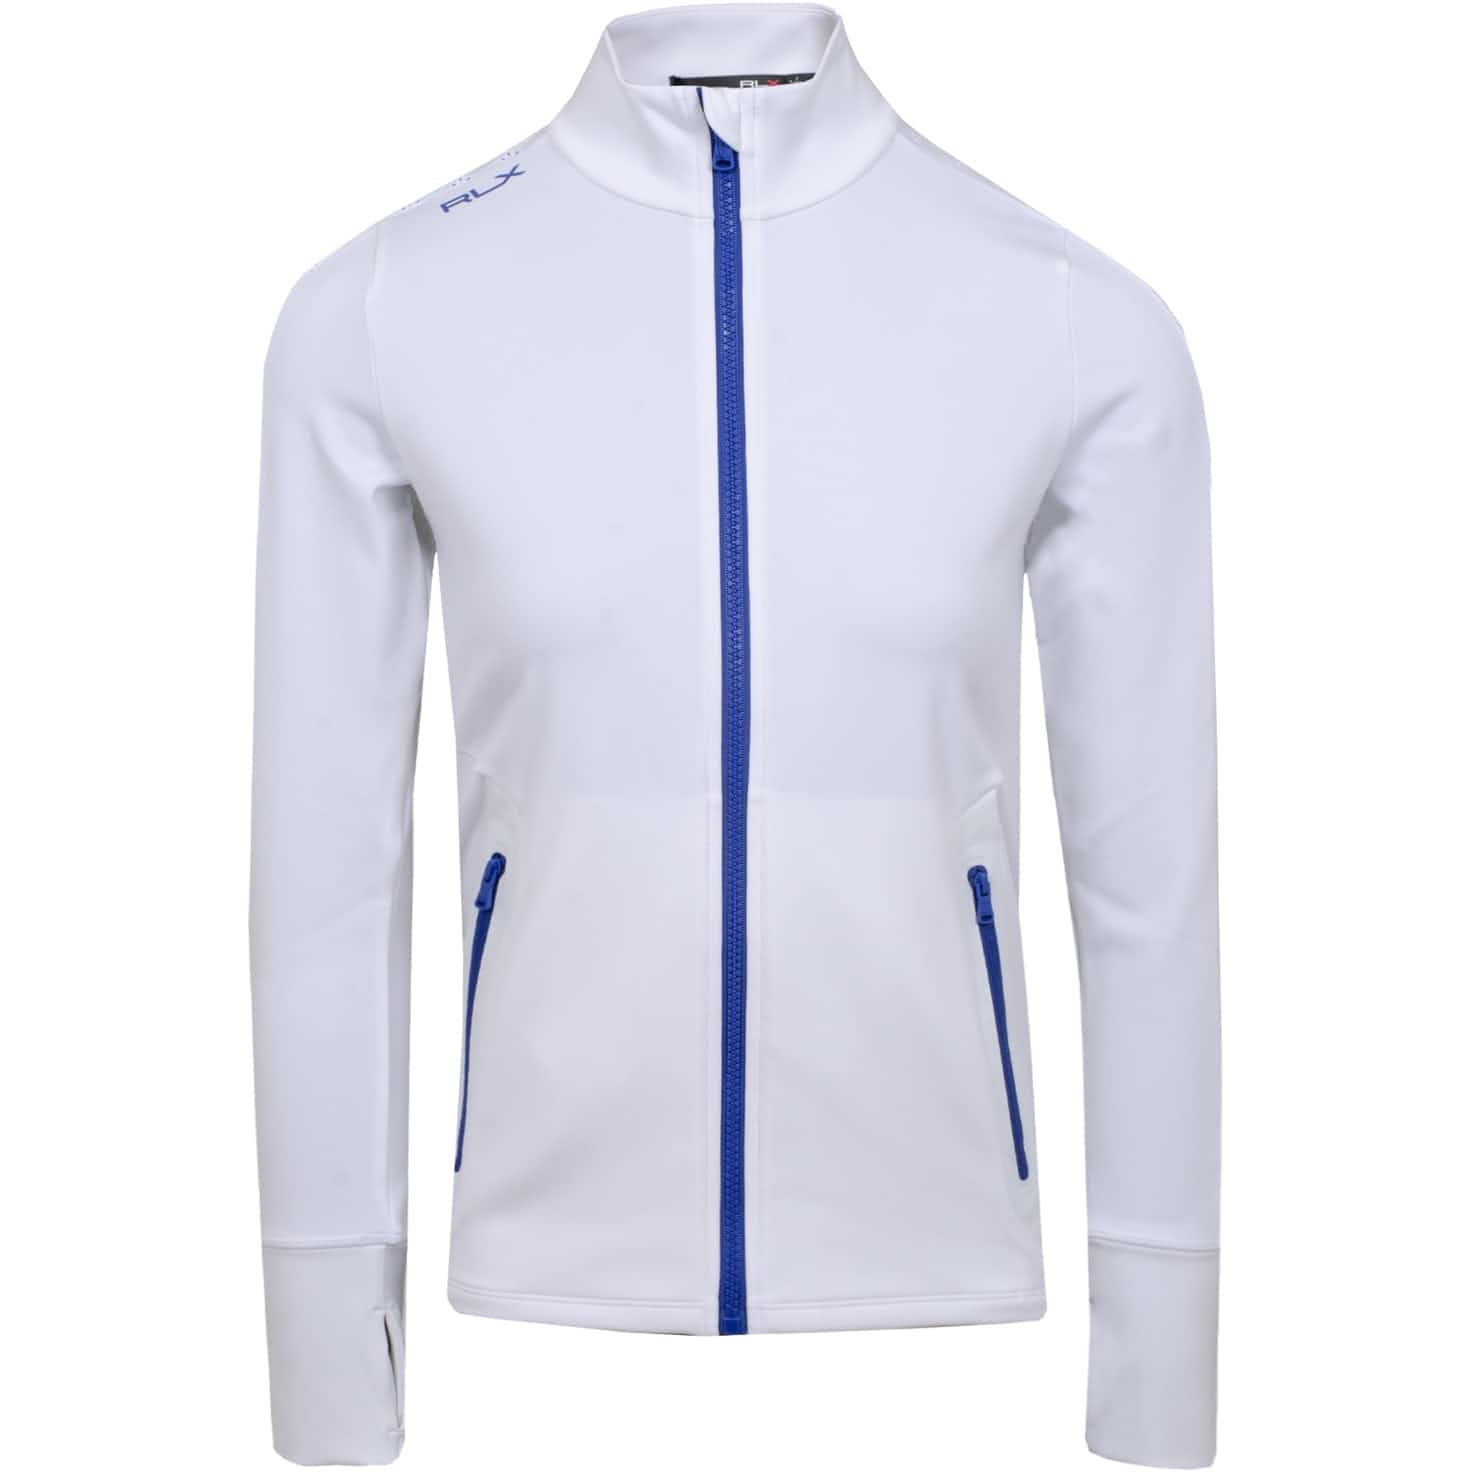 Womens Powerstretch LS Tech Jersey Pure White - SS20